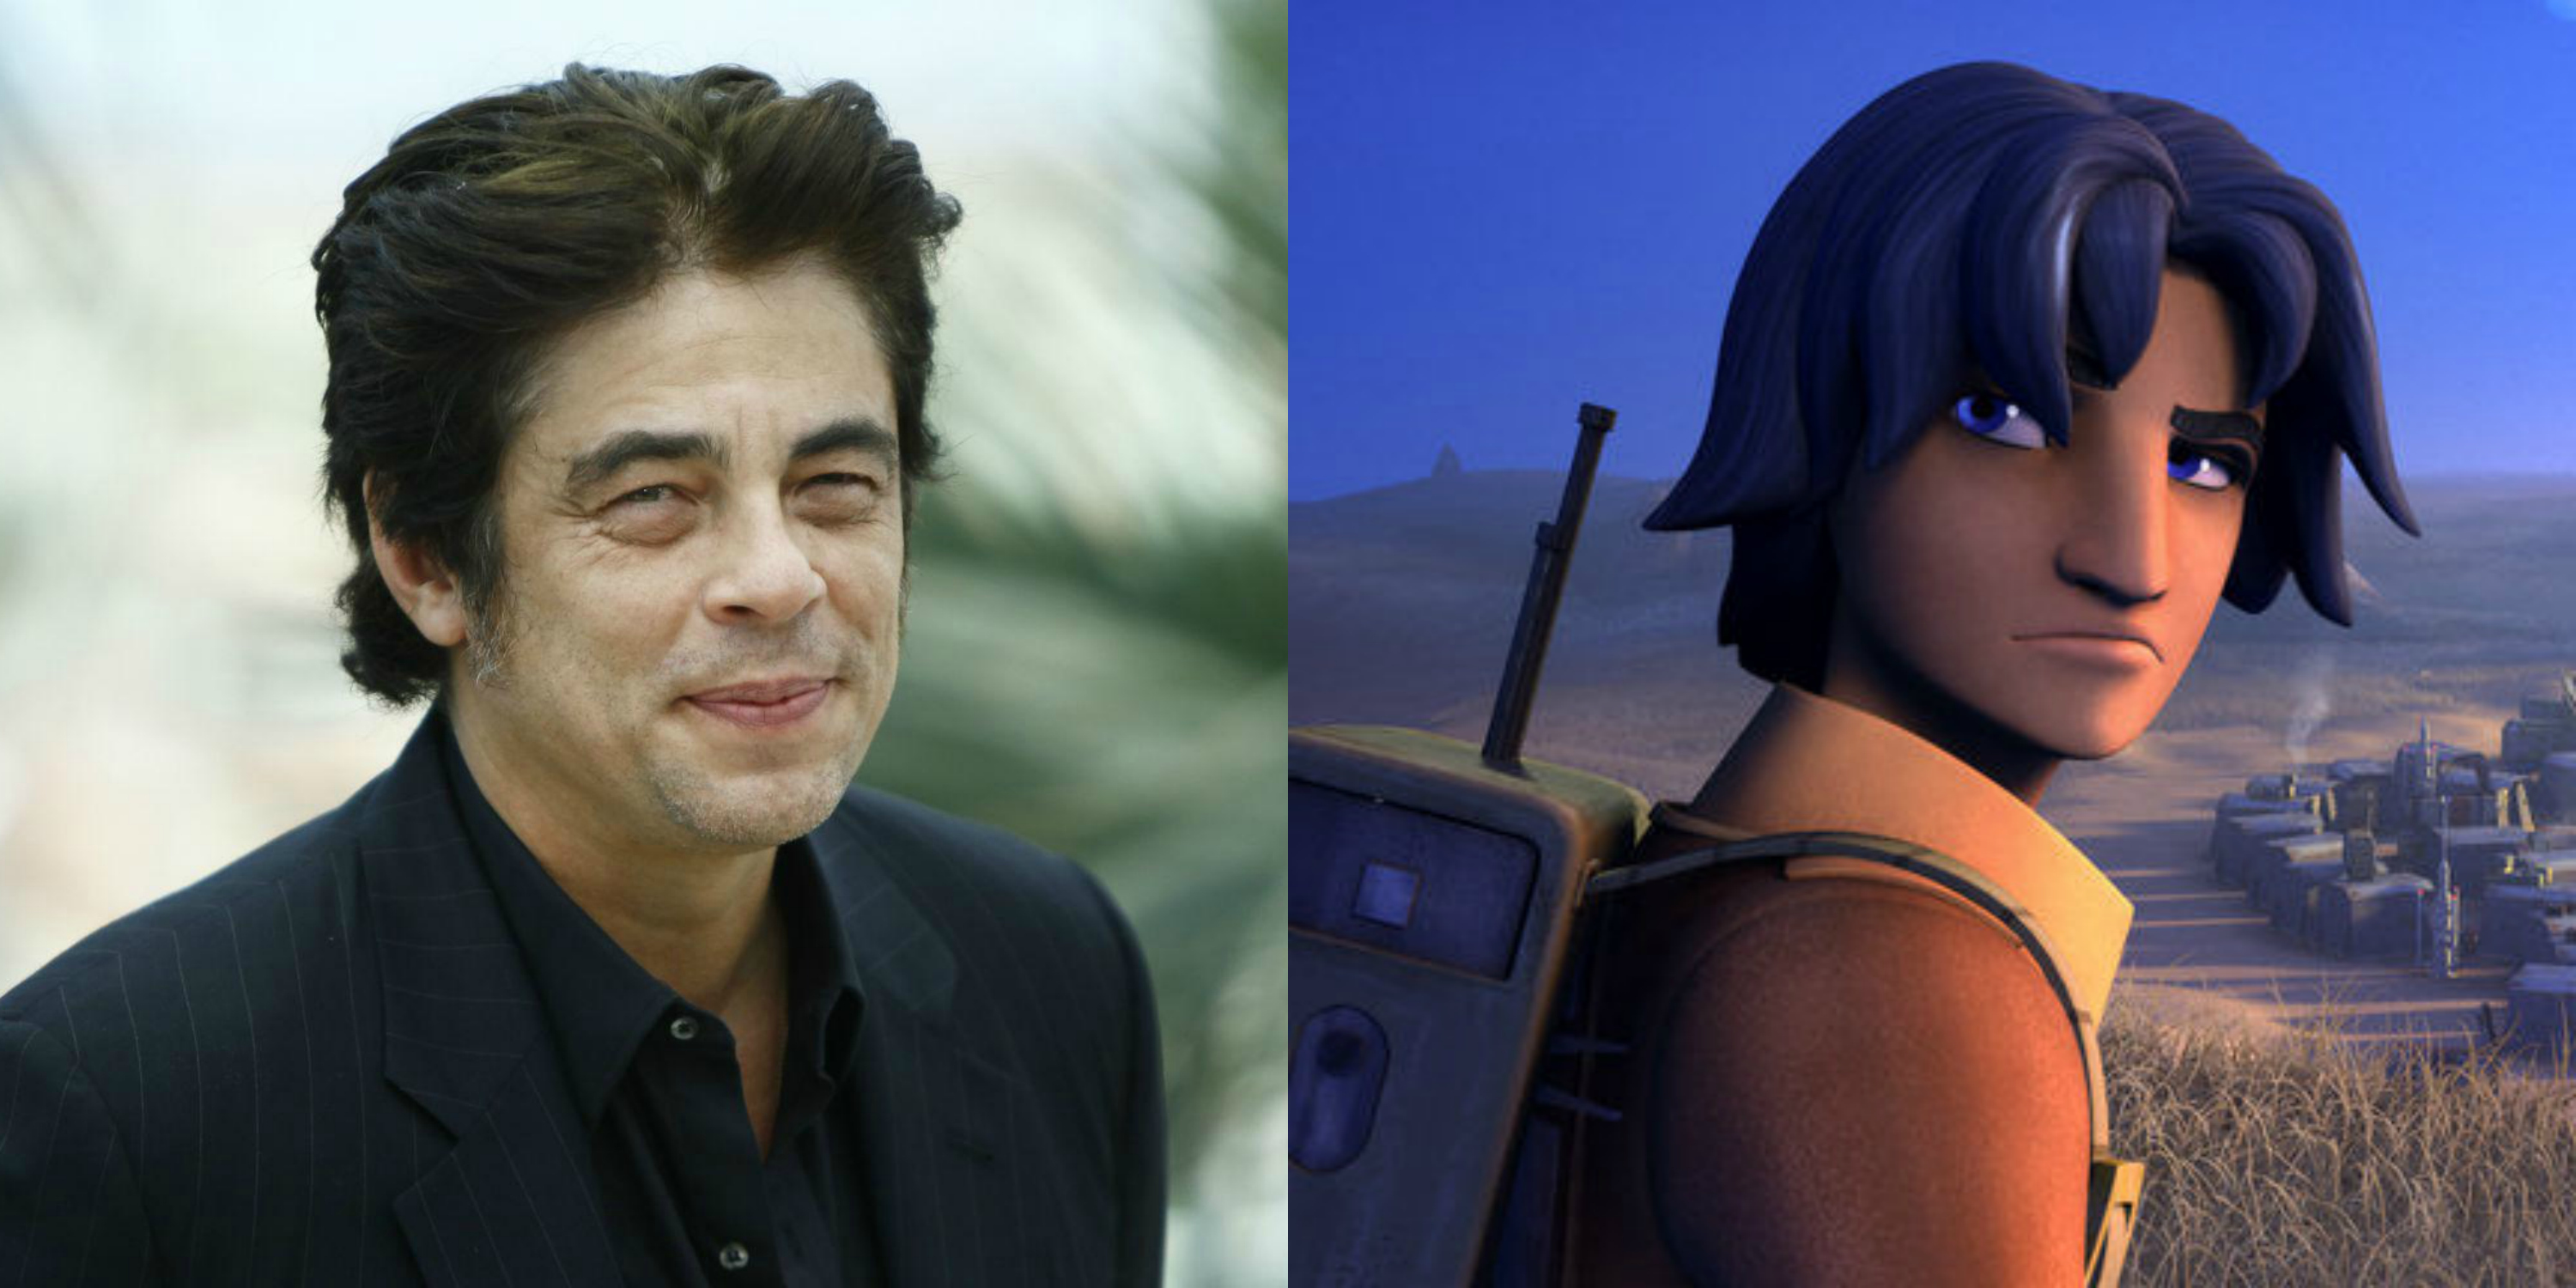 Benicio del Toro is theorized to be playing Ezra Bridger (and Rey's father) in 'Star Wars: The Last Jedi.'